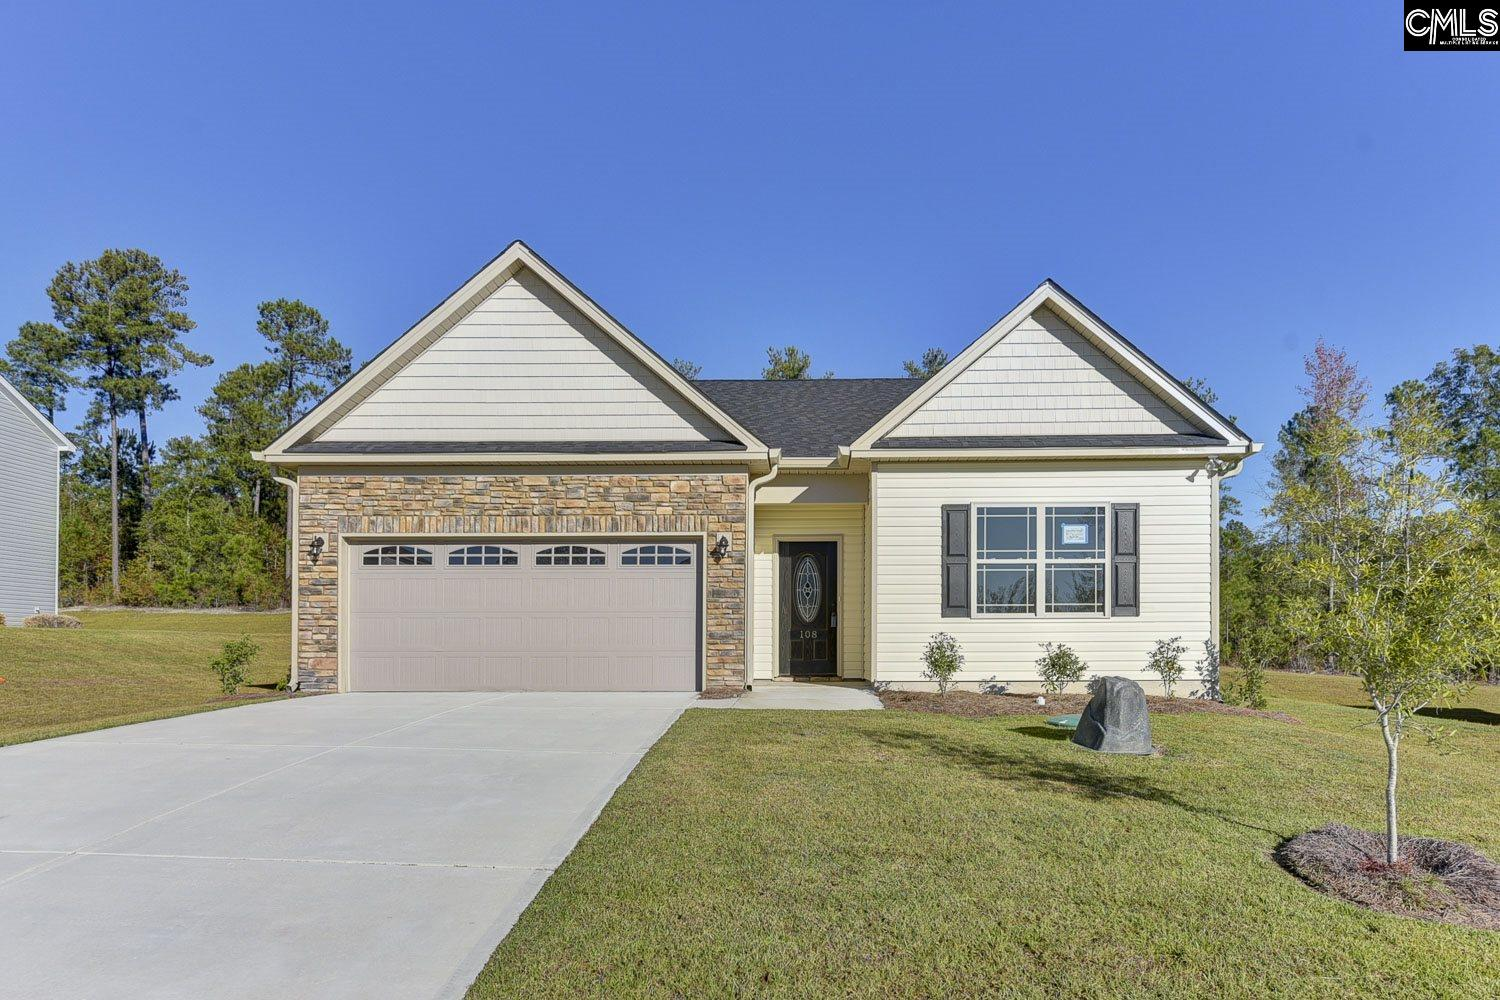 108 Tall Pines Gaston, SC 29053